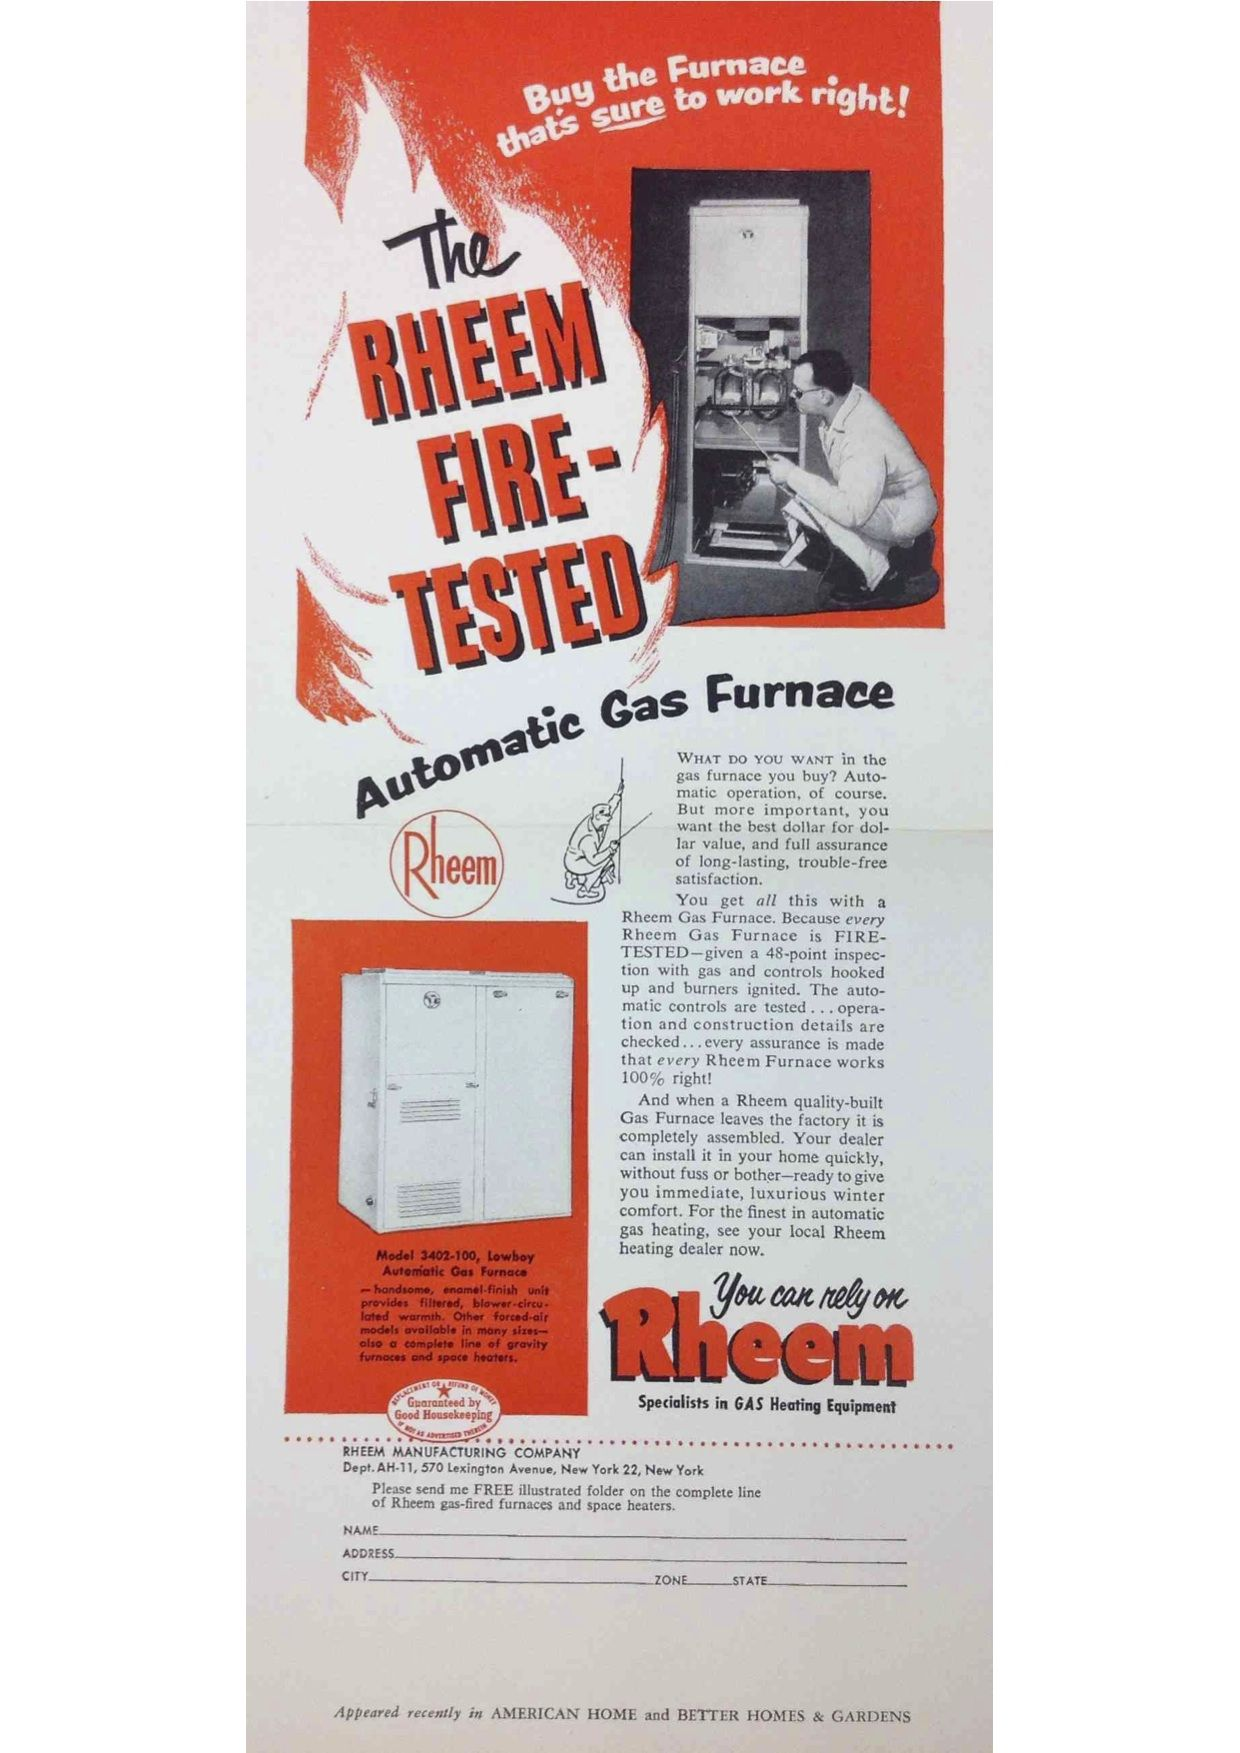 Fire Tested Vintage Rheem Ad For The Automatic Gas Furnace